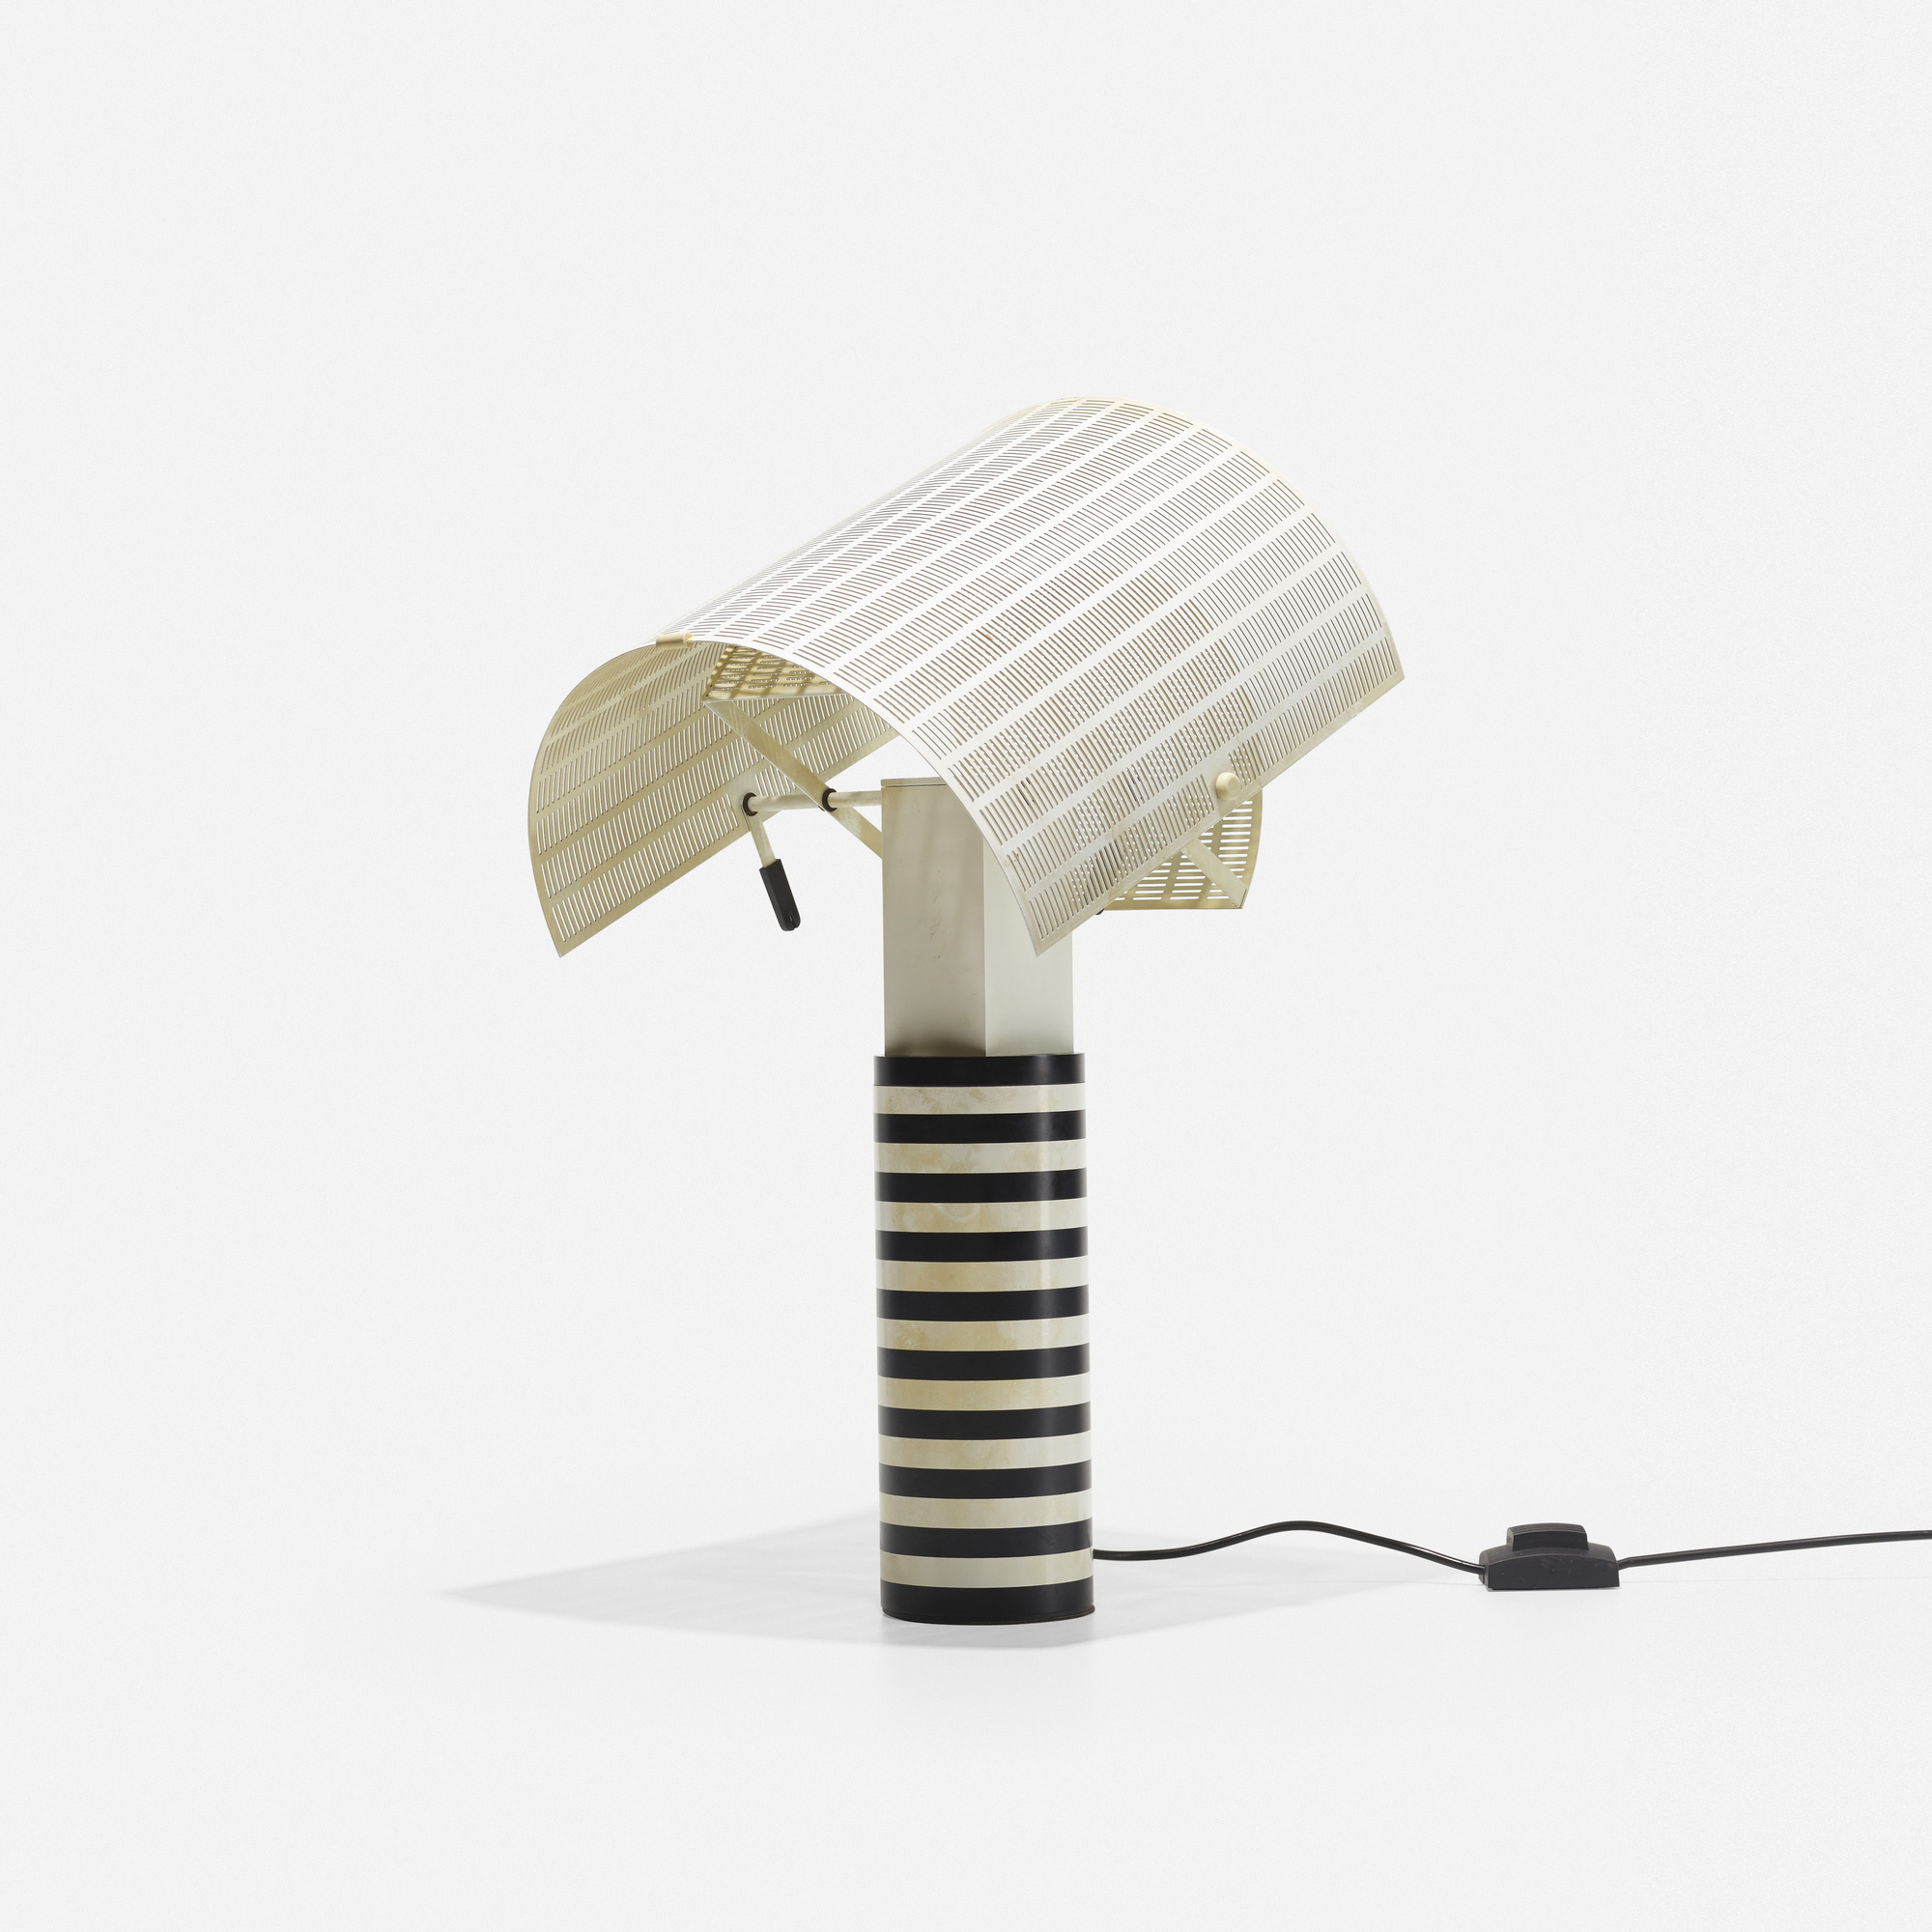 322: Mario Botta / Shogun table lamp (1 of 2)